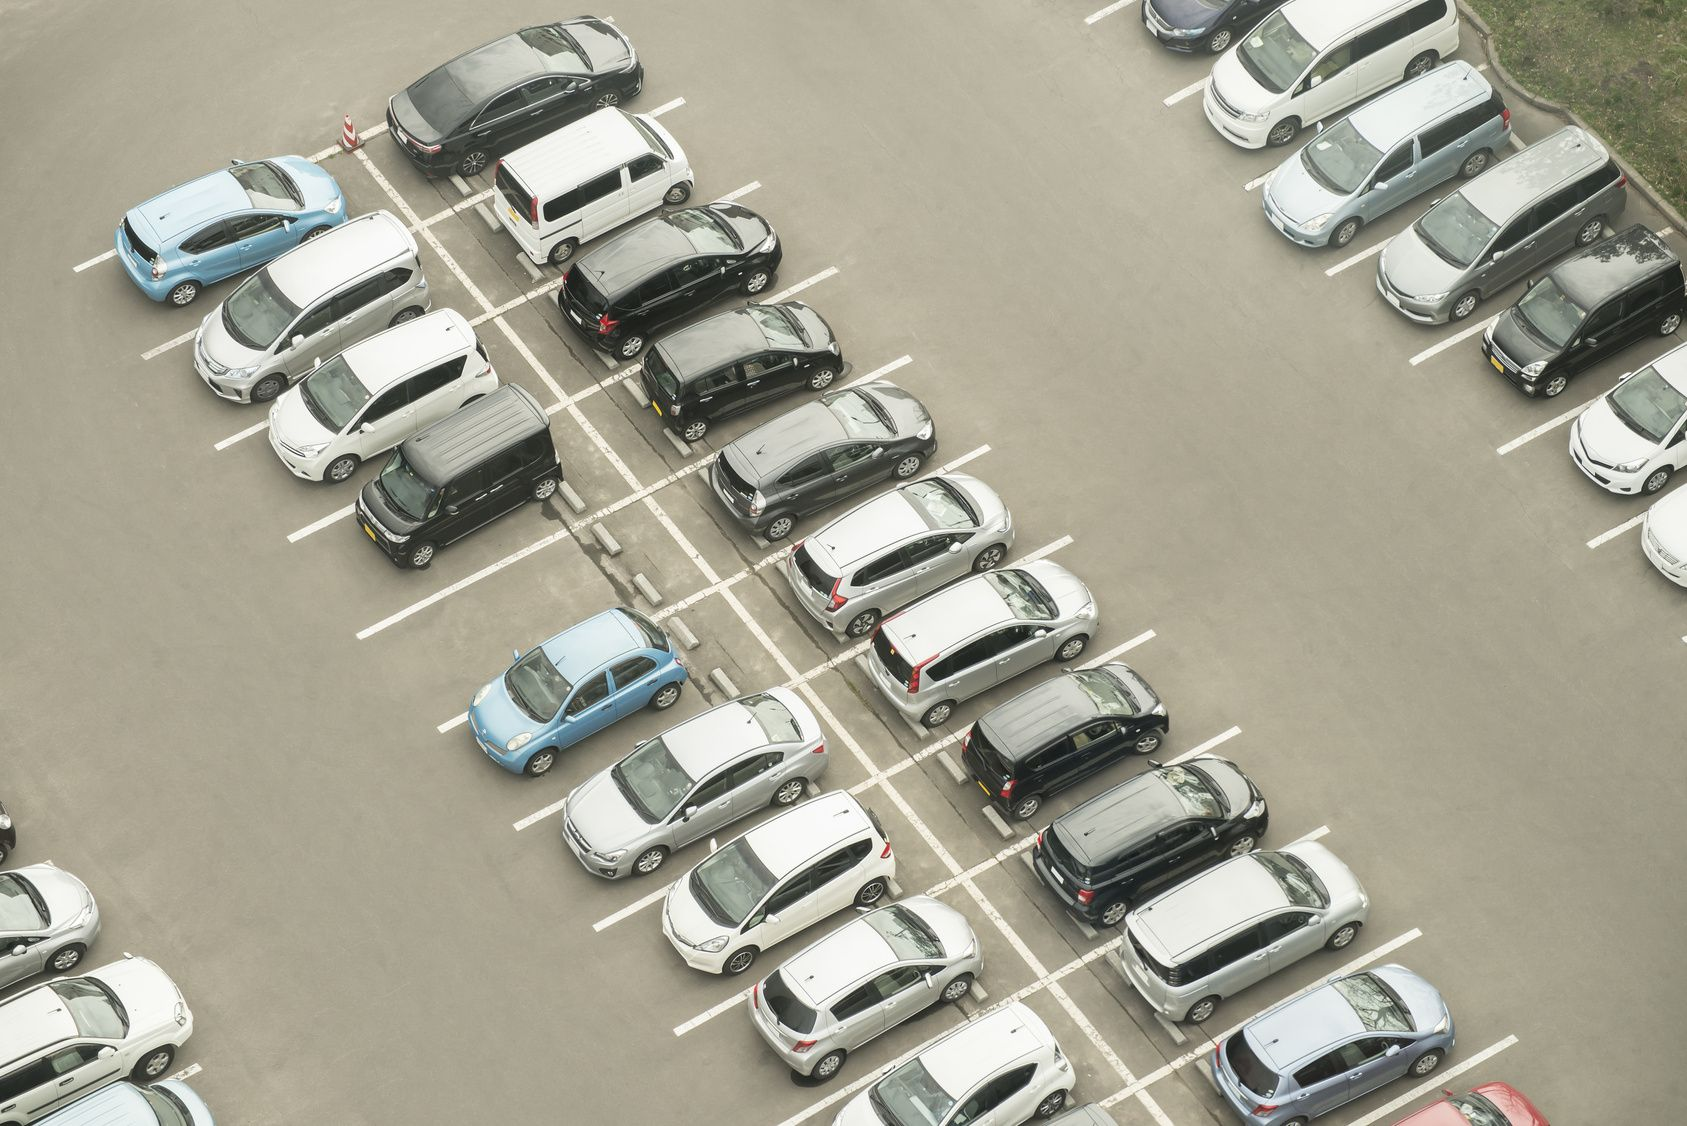 Resolve Luton Airport Parking Issues And Leave Your Car In Safe